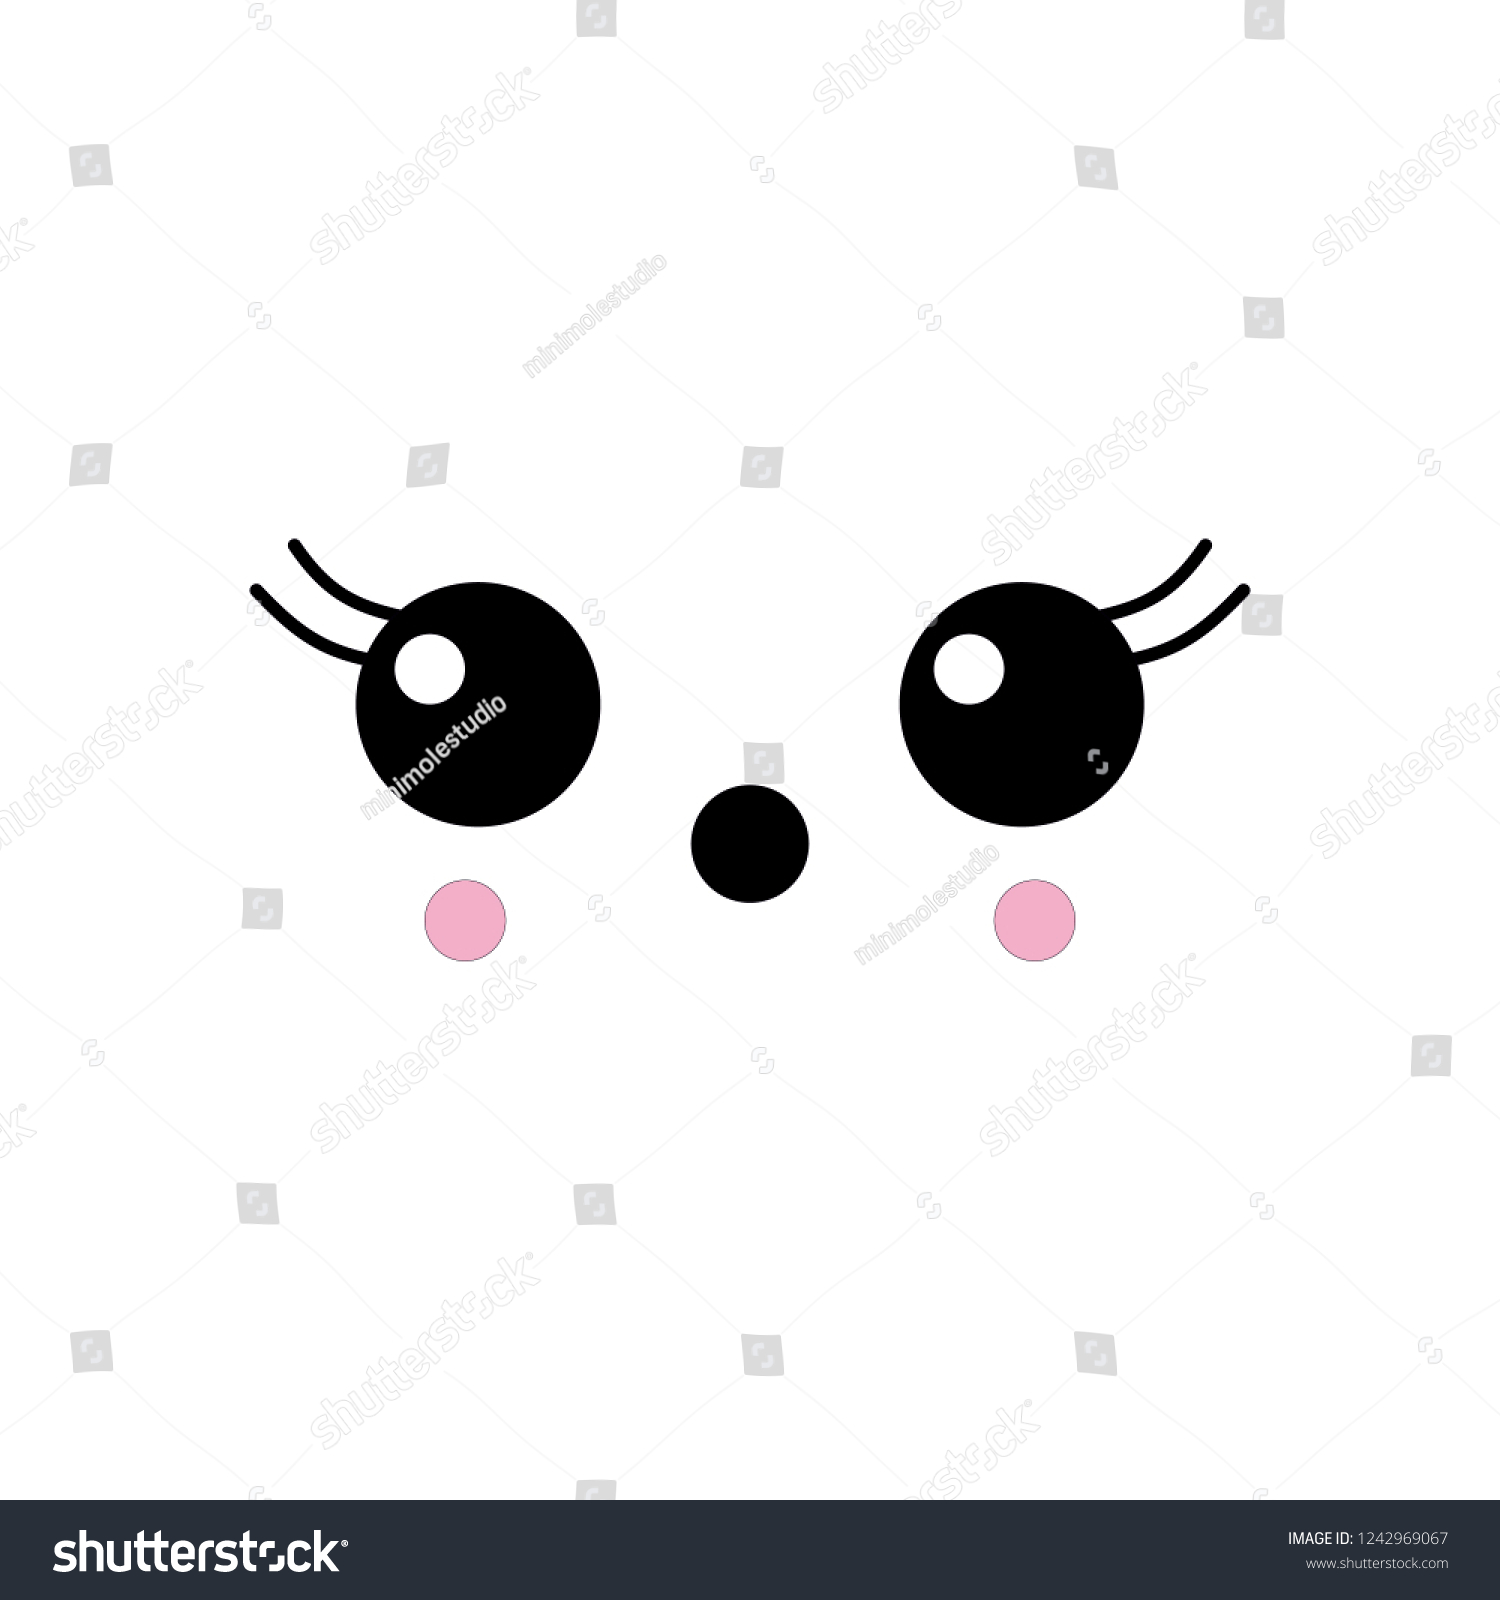 Vector illustration of a cute kawaii anime surprised face with pink cheeks and eyelashes